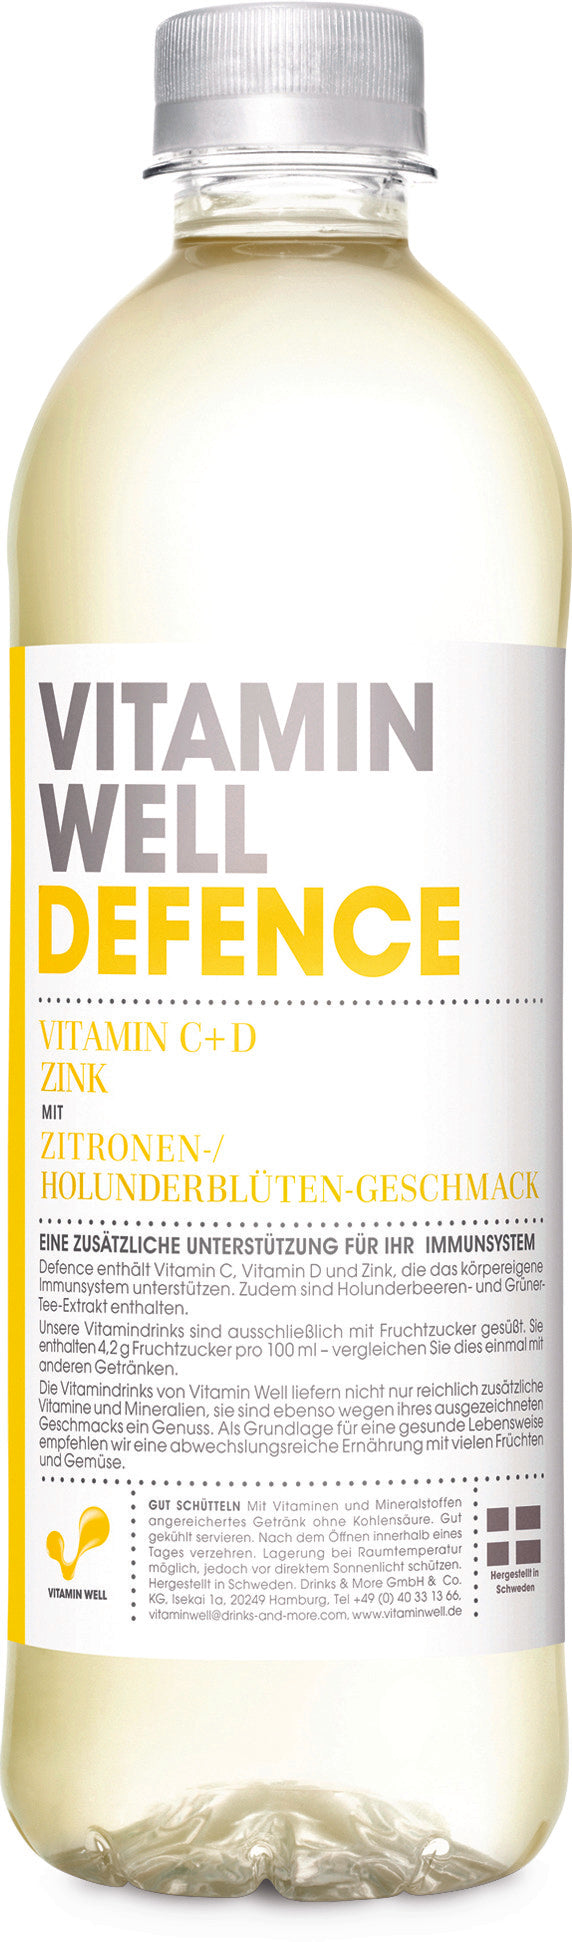 Vitamin Well Defence 50Cl